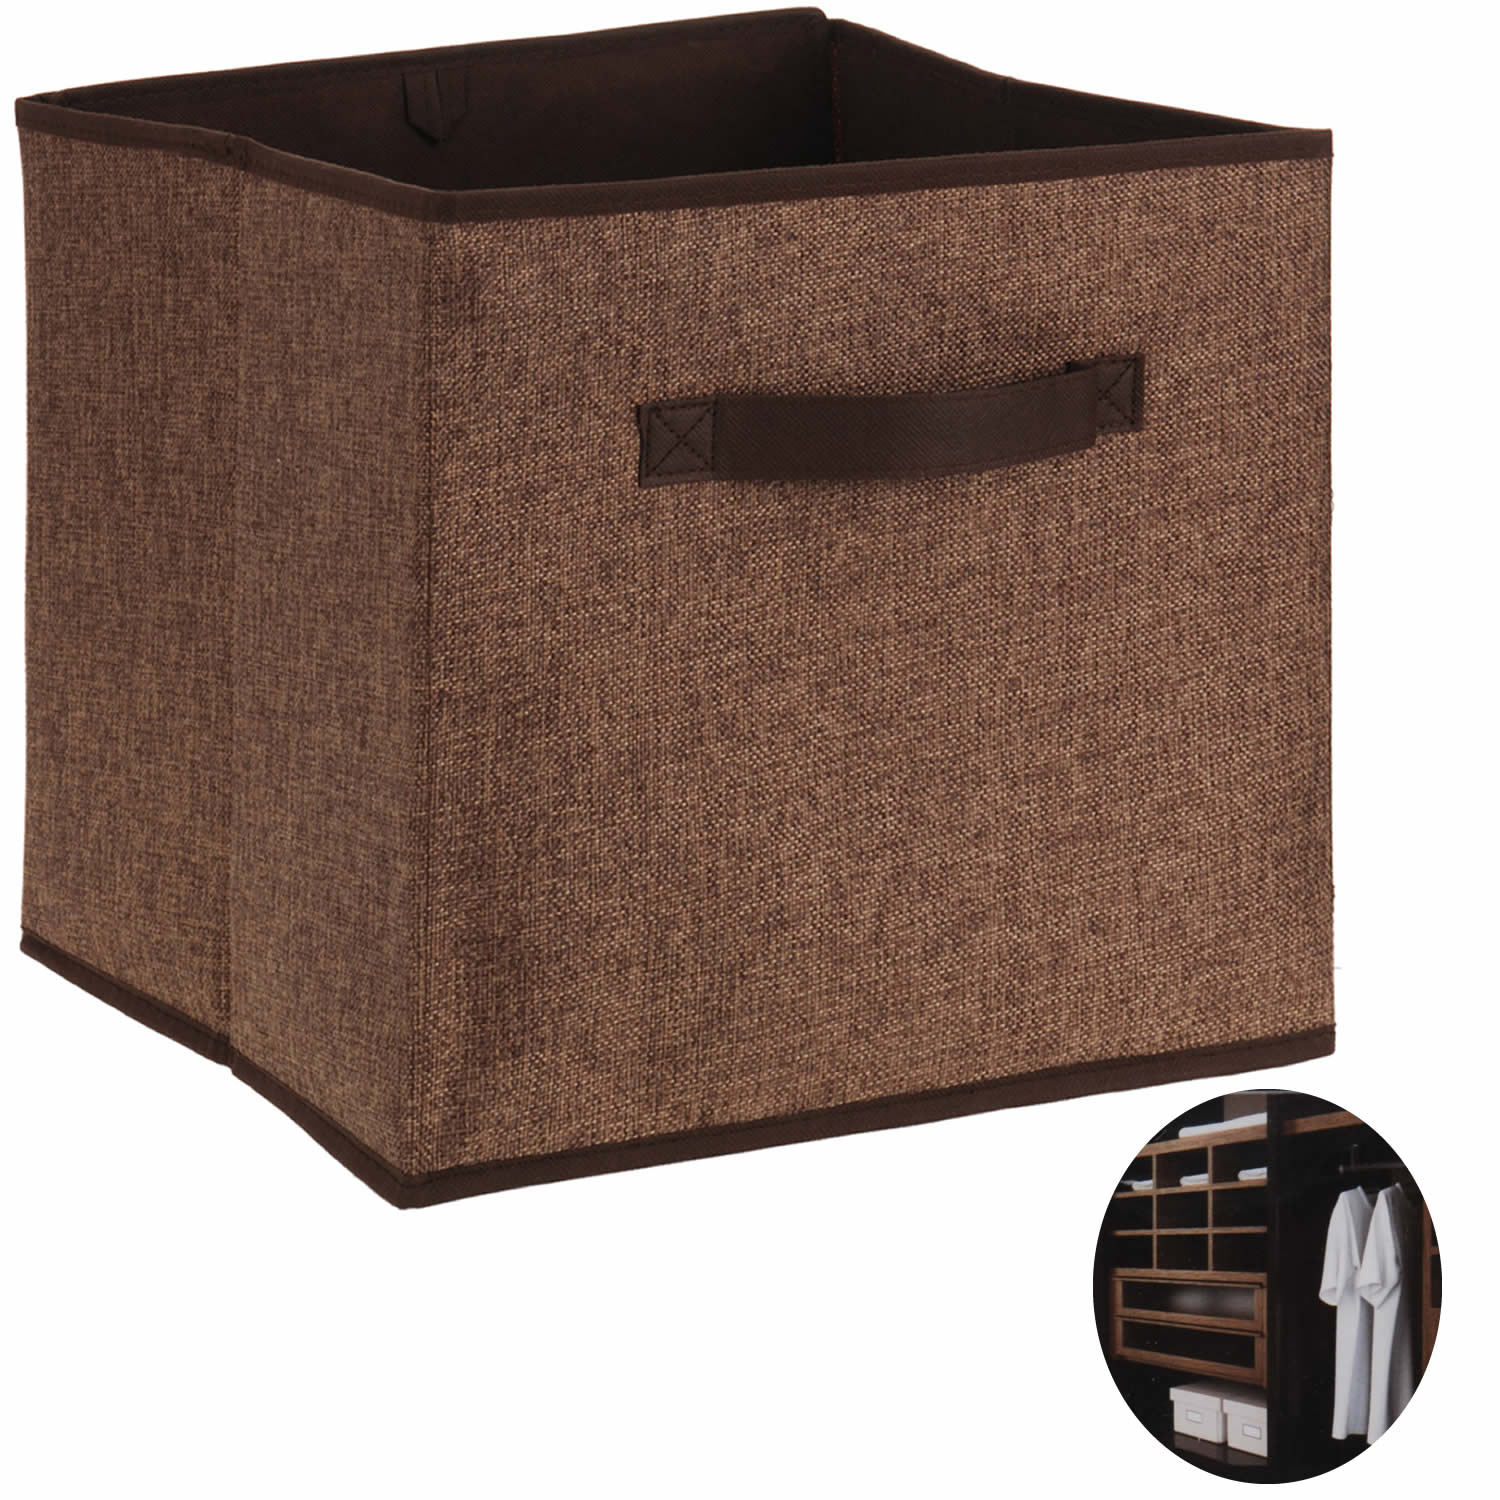 ls organizer aufbewahrung box kiste schublade socken. Black Bedroom Furniture Sets. Home Design Ideas